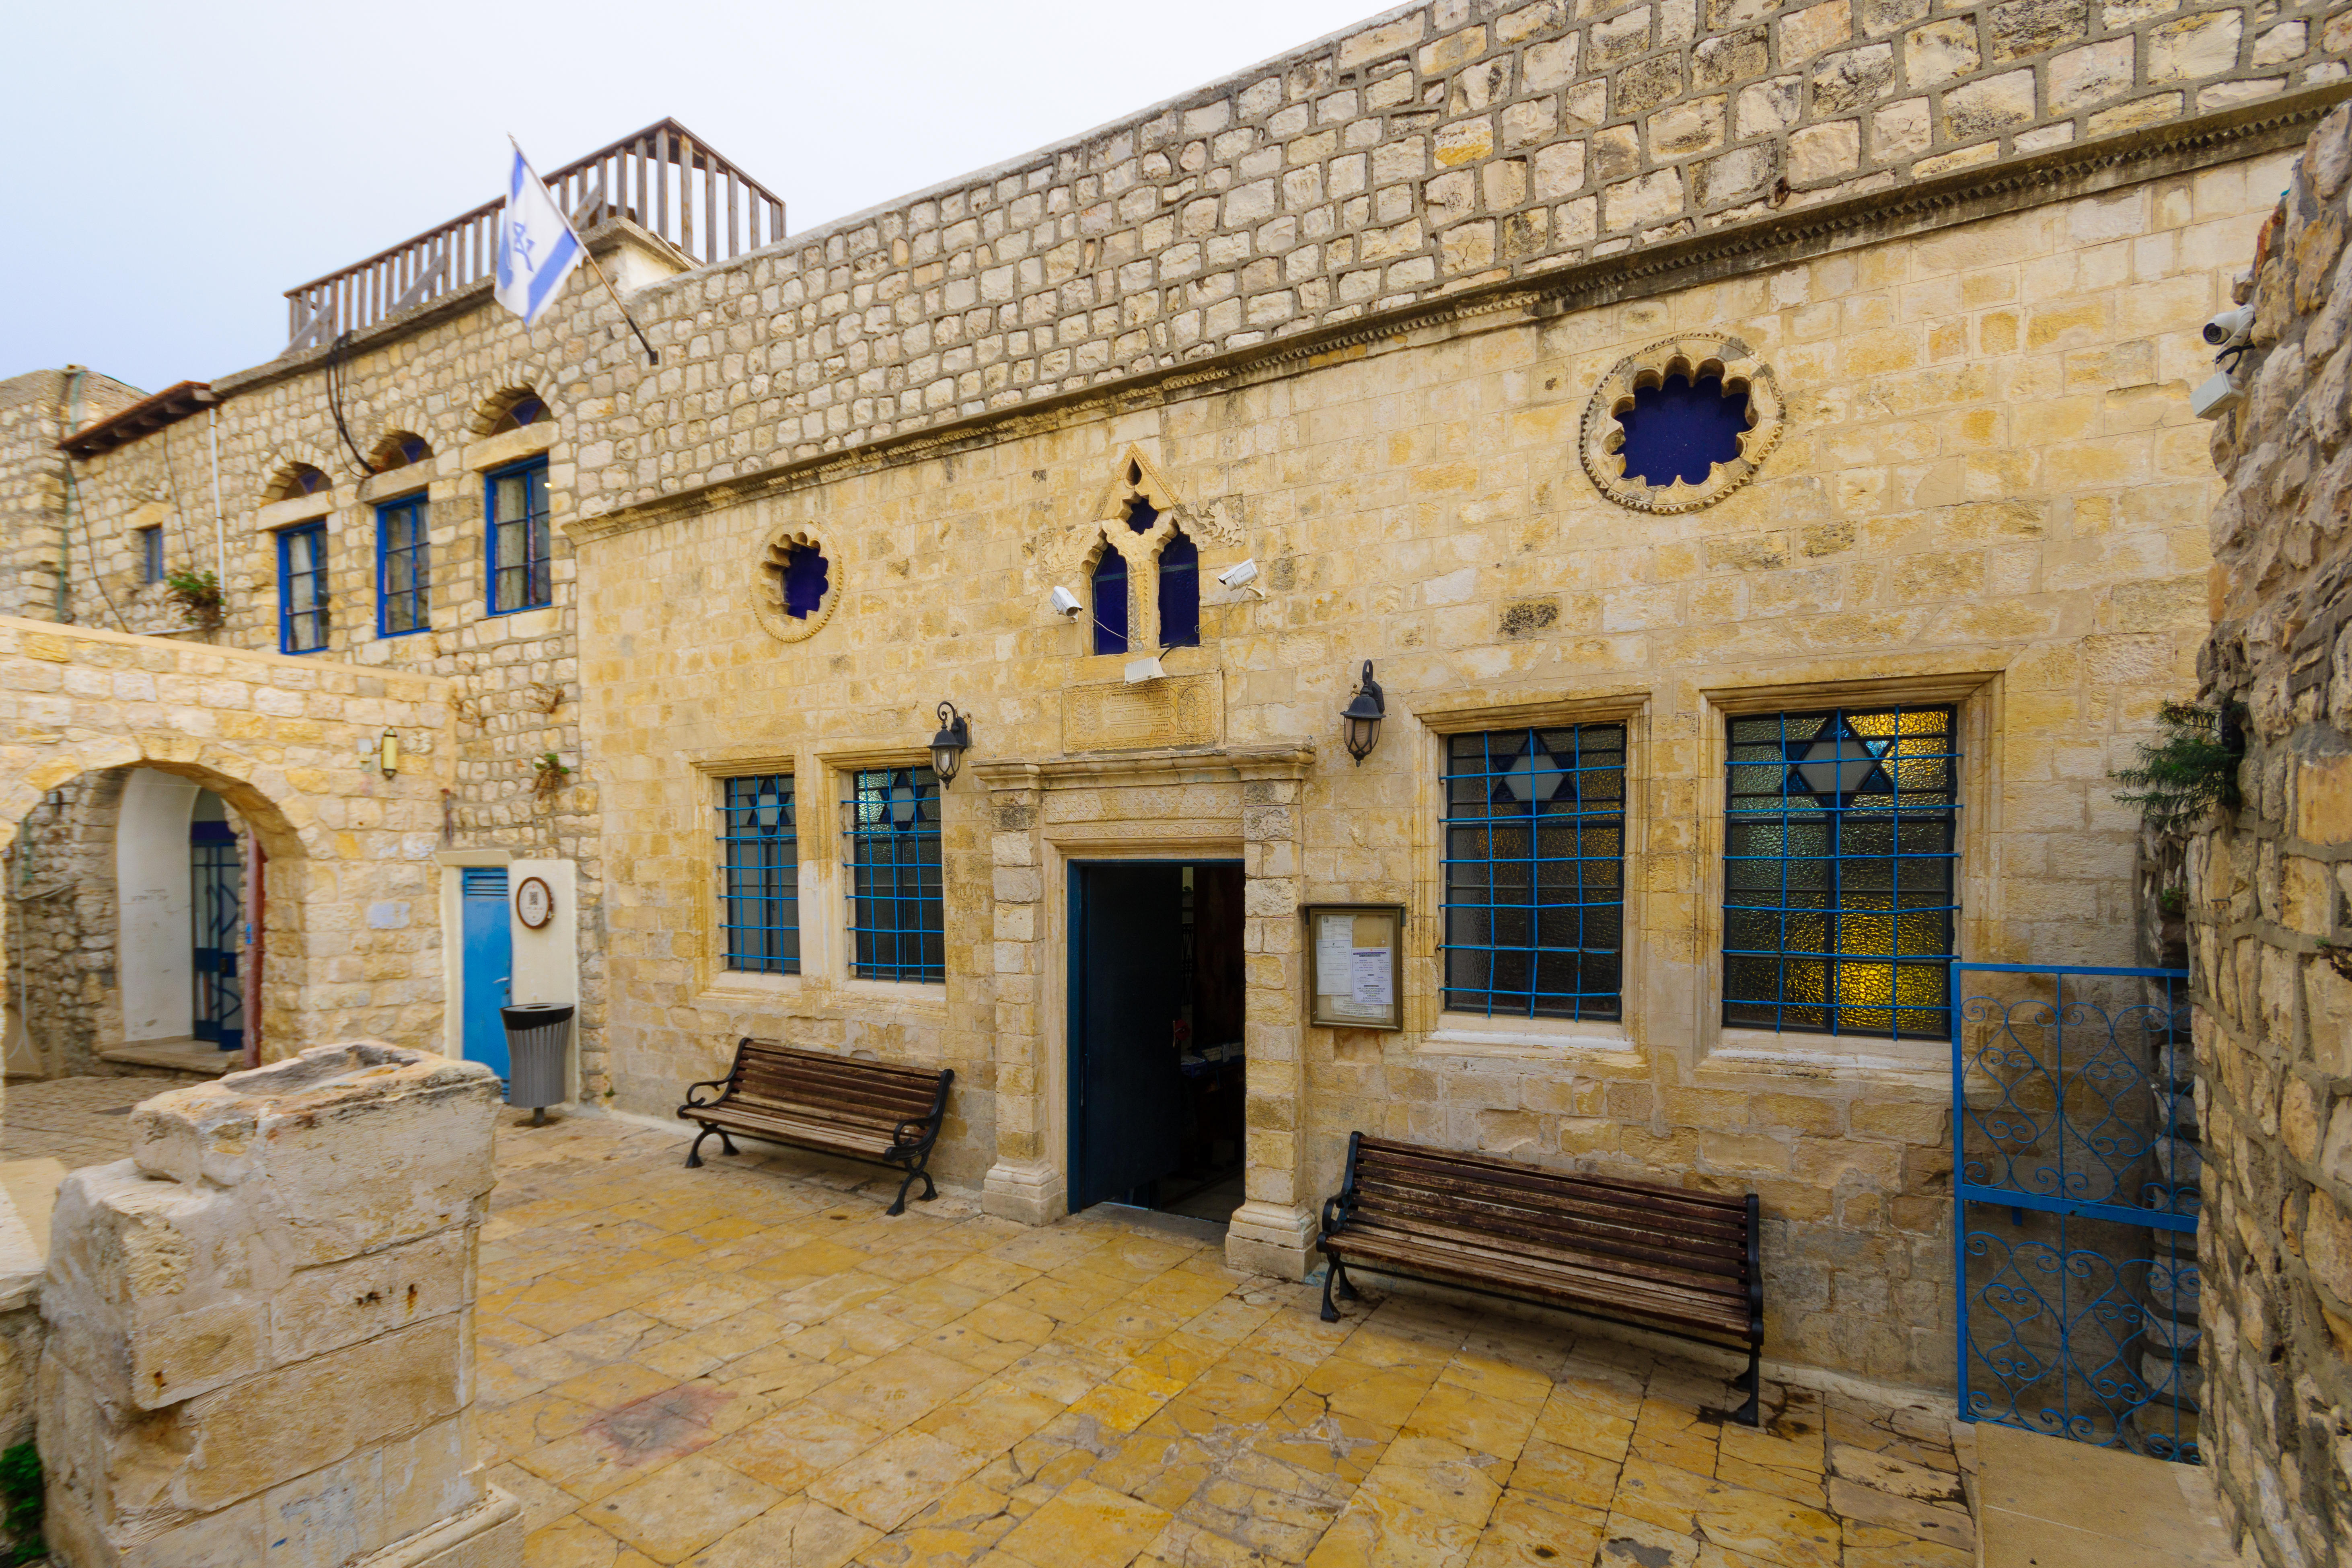 The Histories, Origins and Cultures of Israel's Jewish Community